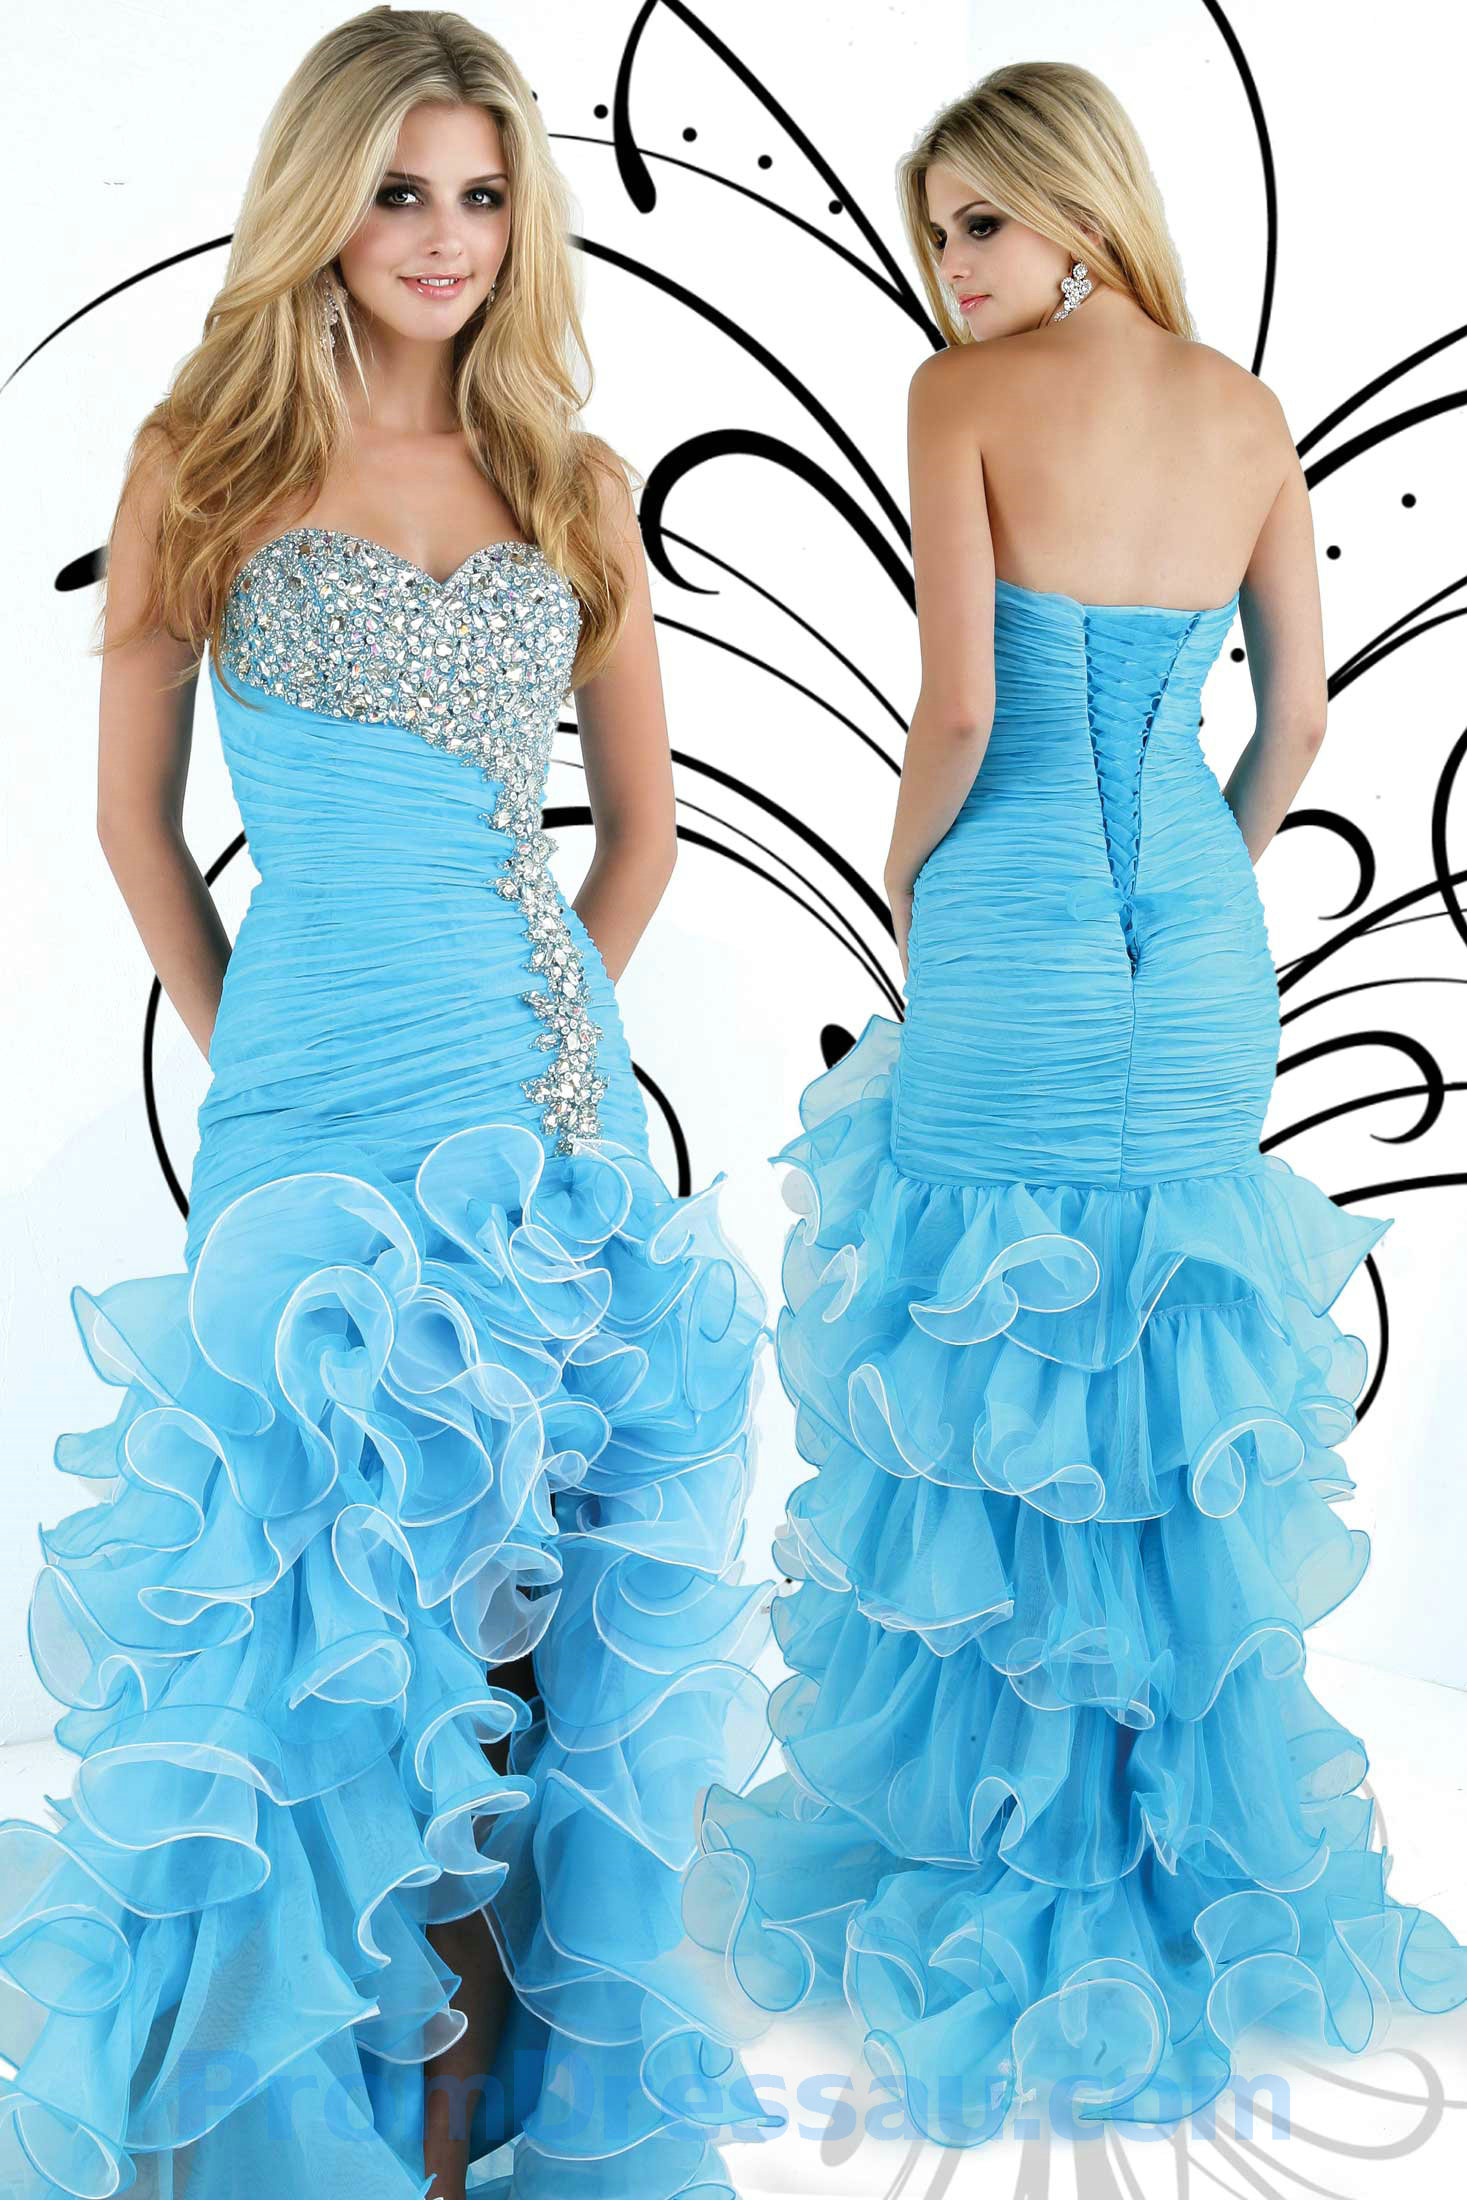 Mermaid style prom dresses for cheap – Dress blog Edin